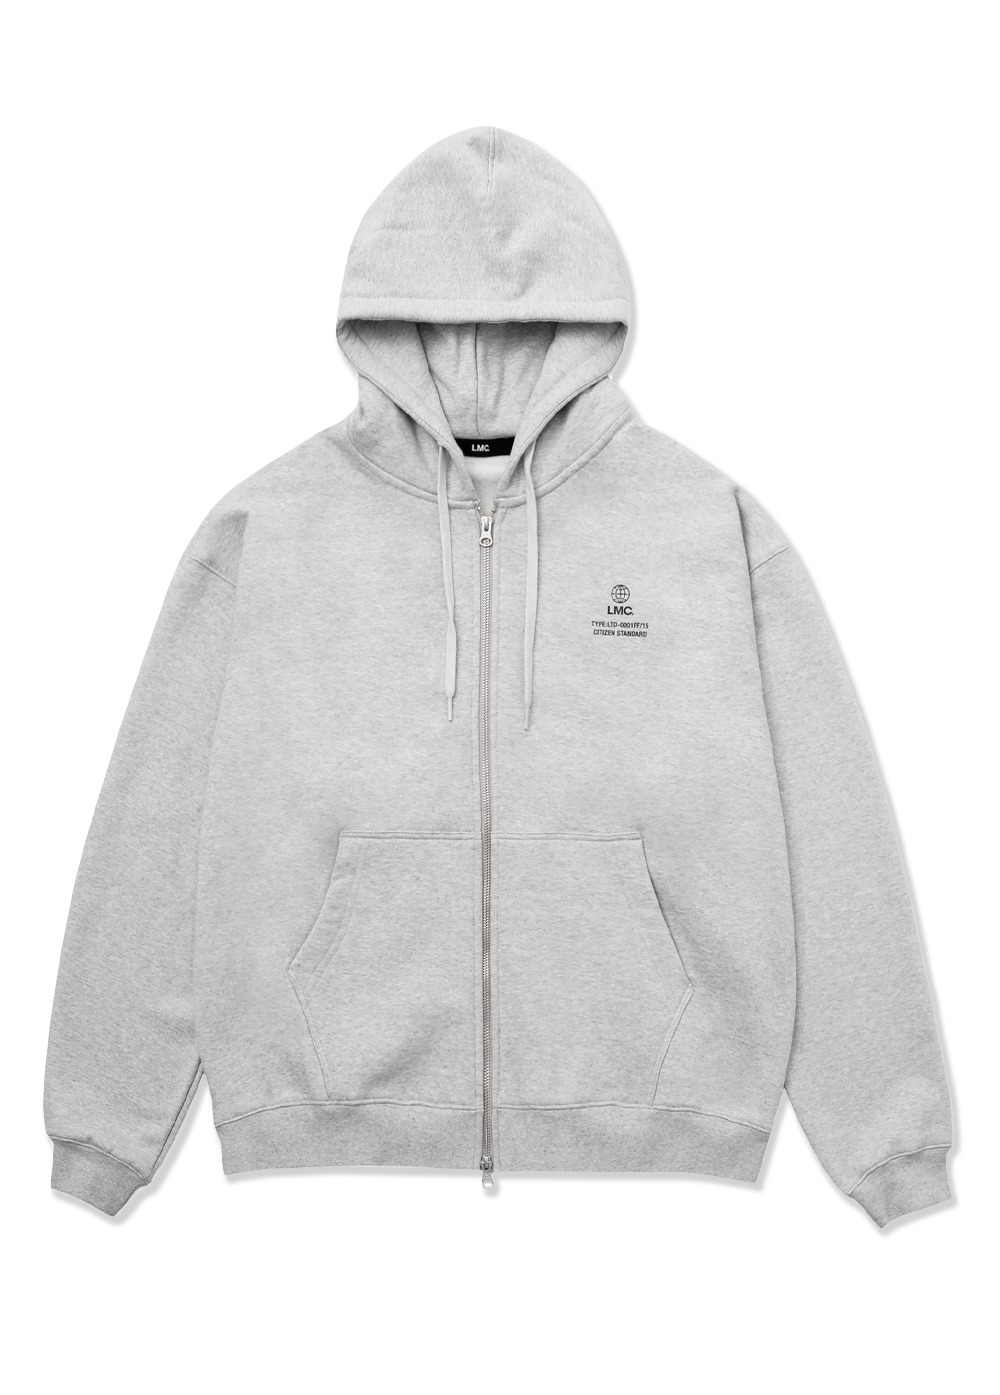 LMC SIGNATURE GLOBE ZIP-UP HOODIE heather gray